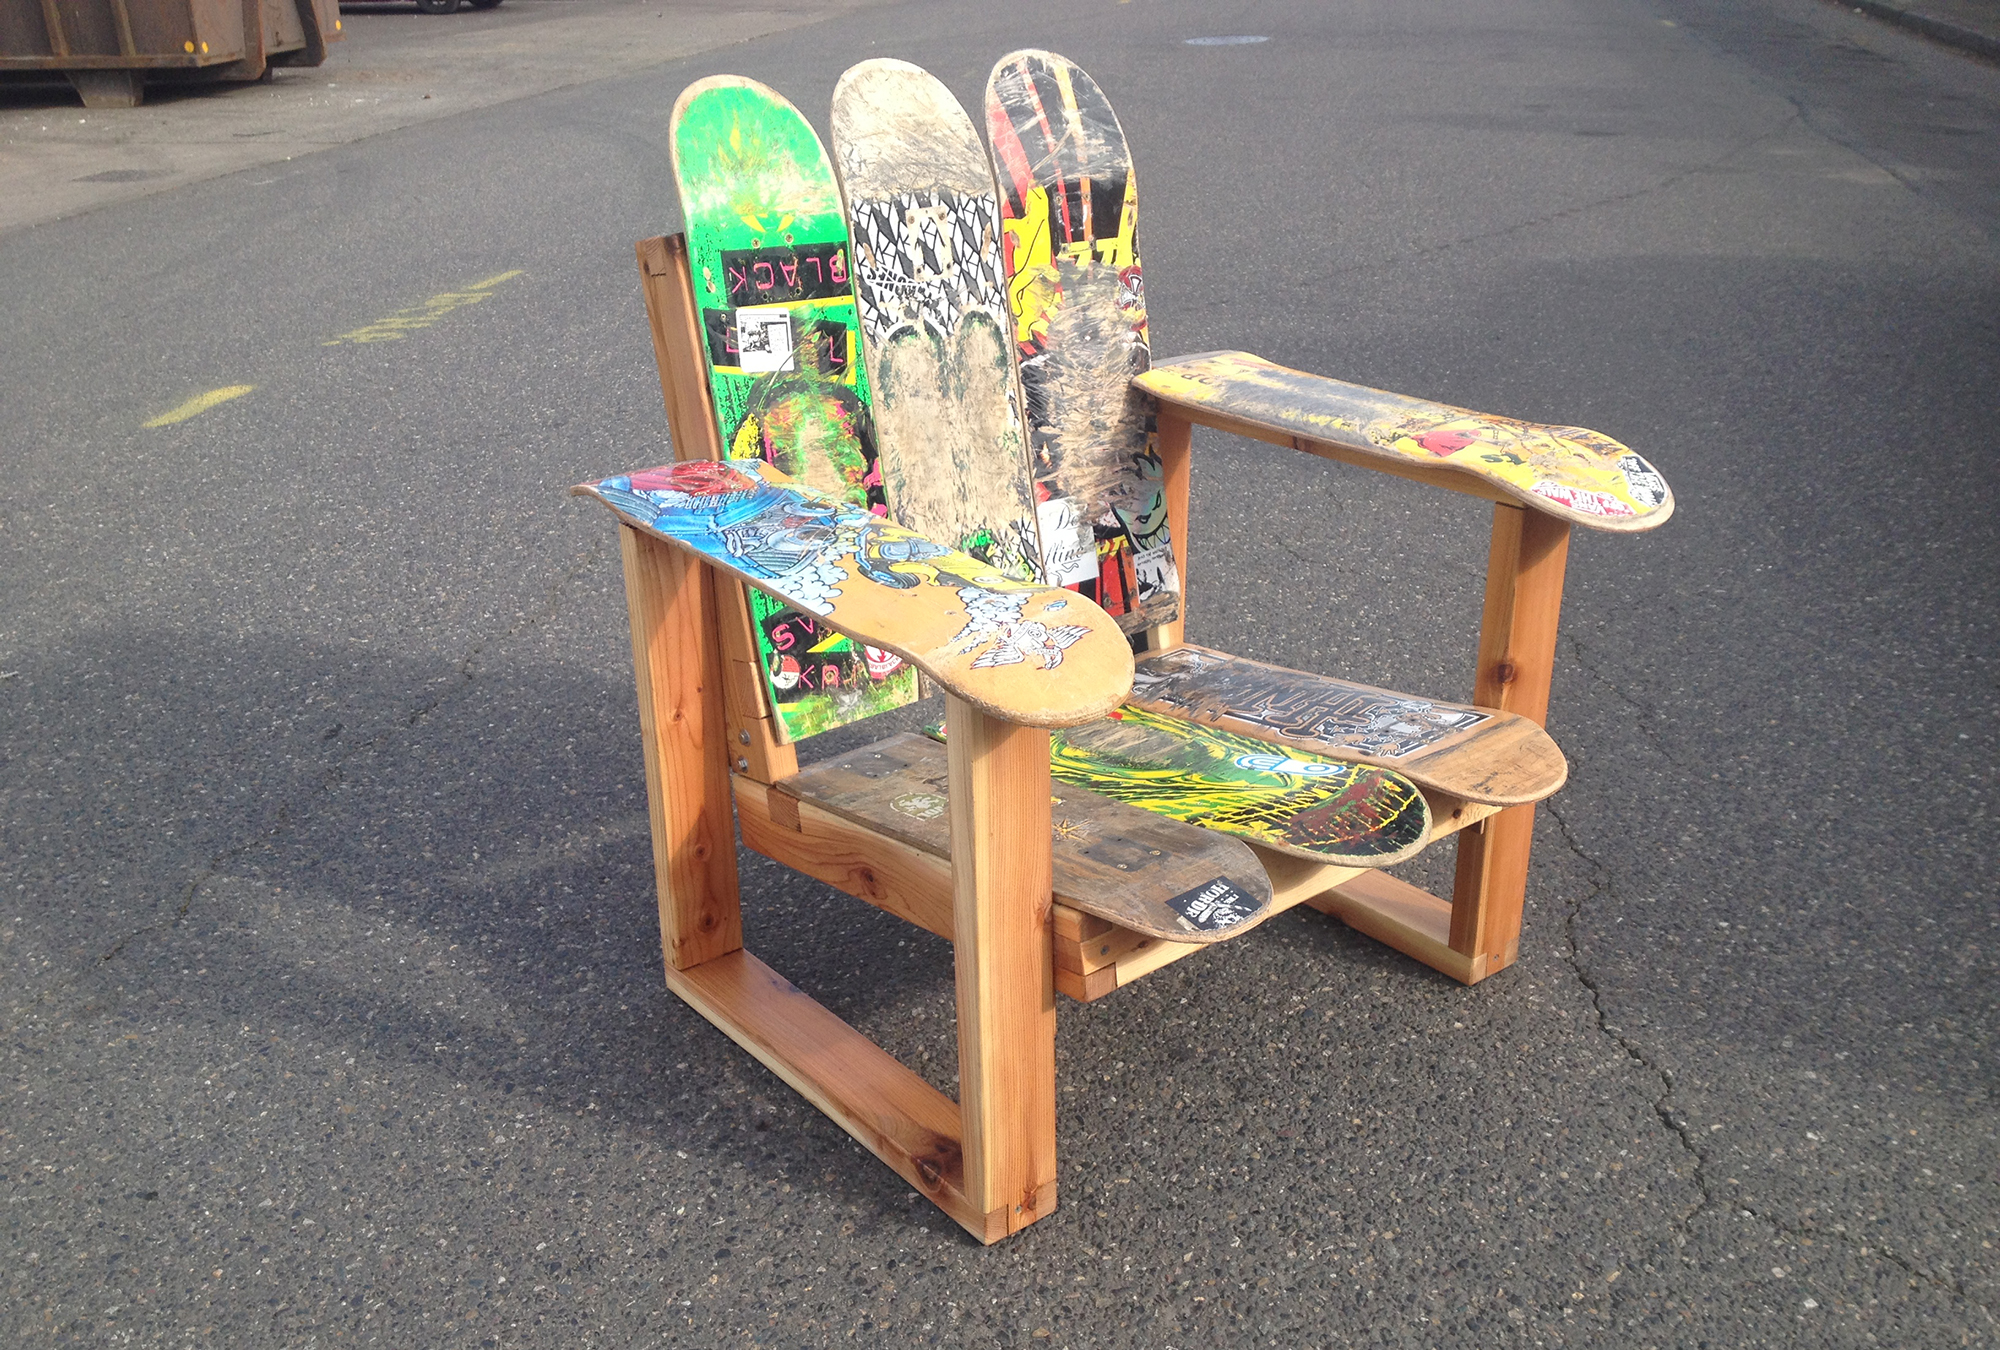 upcycled recycled skateboard chair furniture